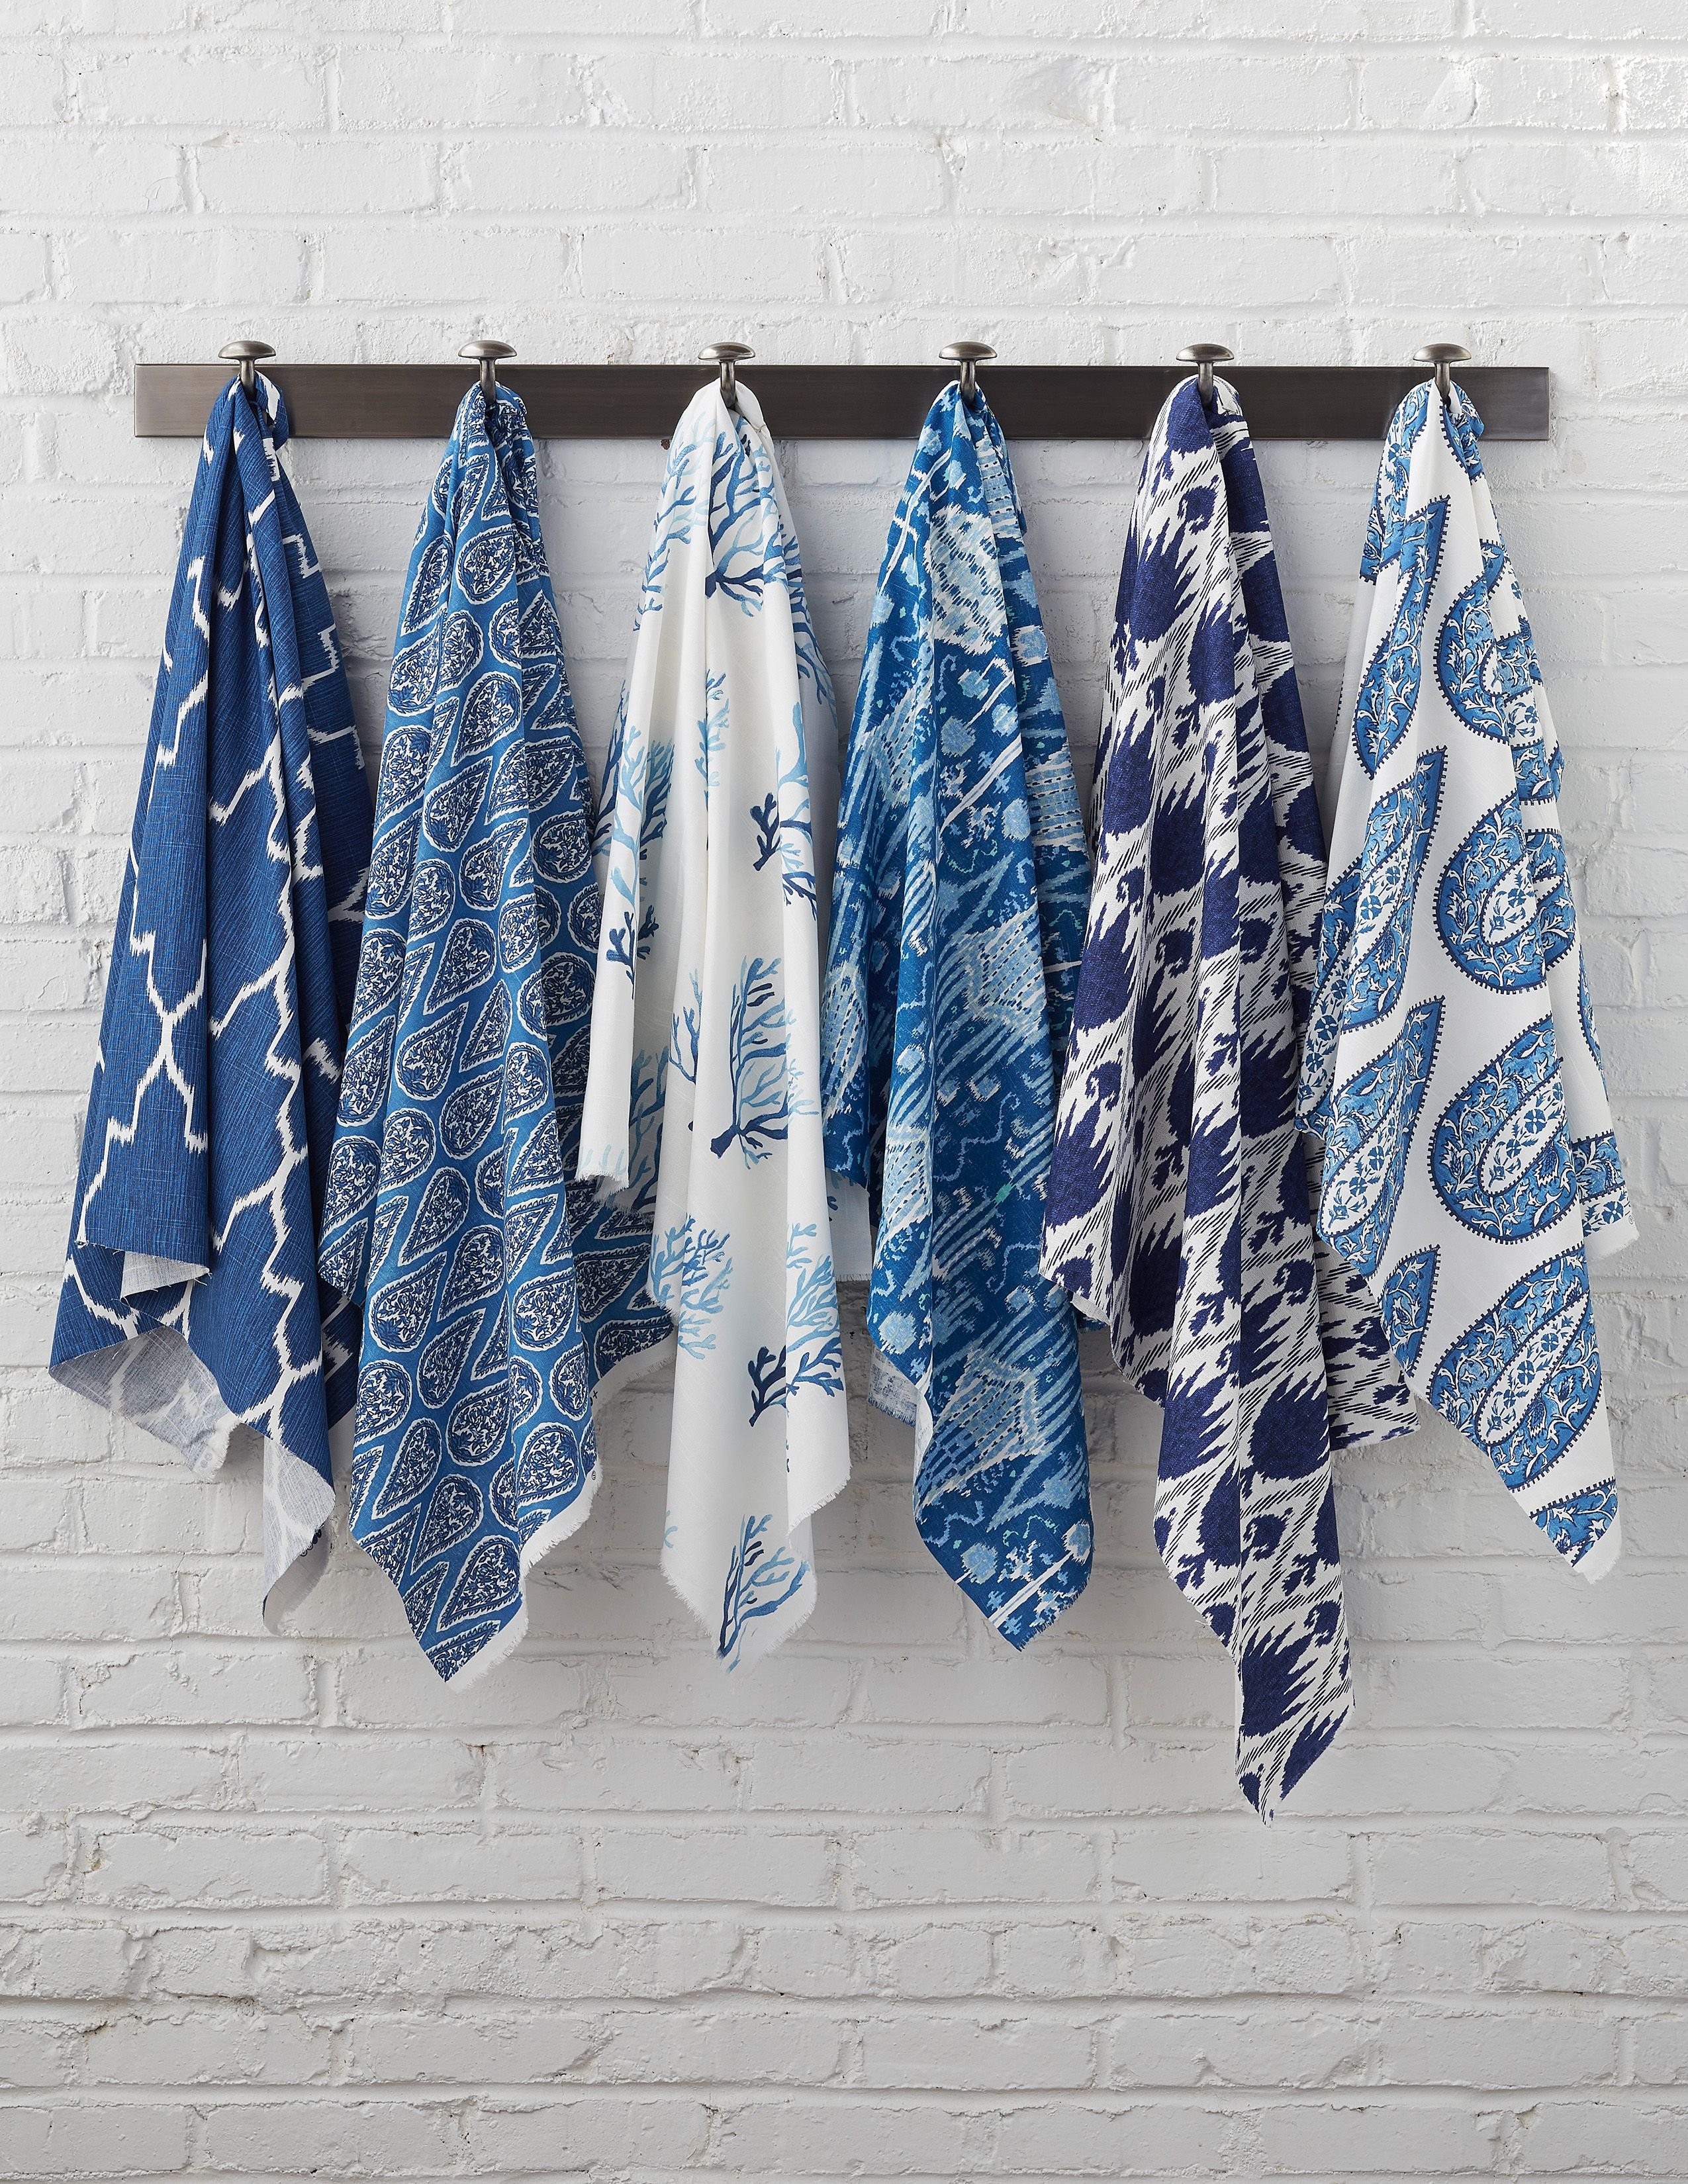 Lacefield Designs Cobalt Textile Collection introduced